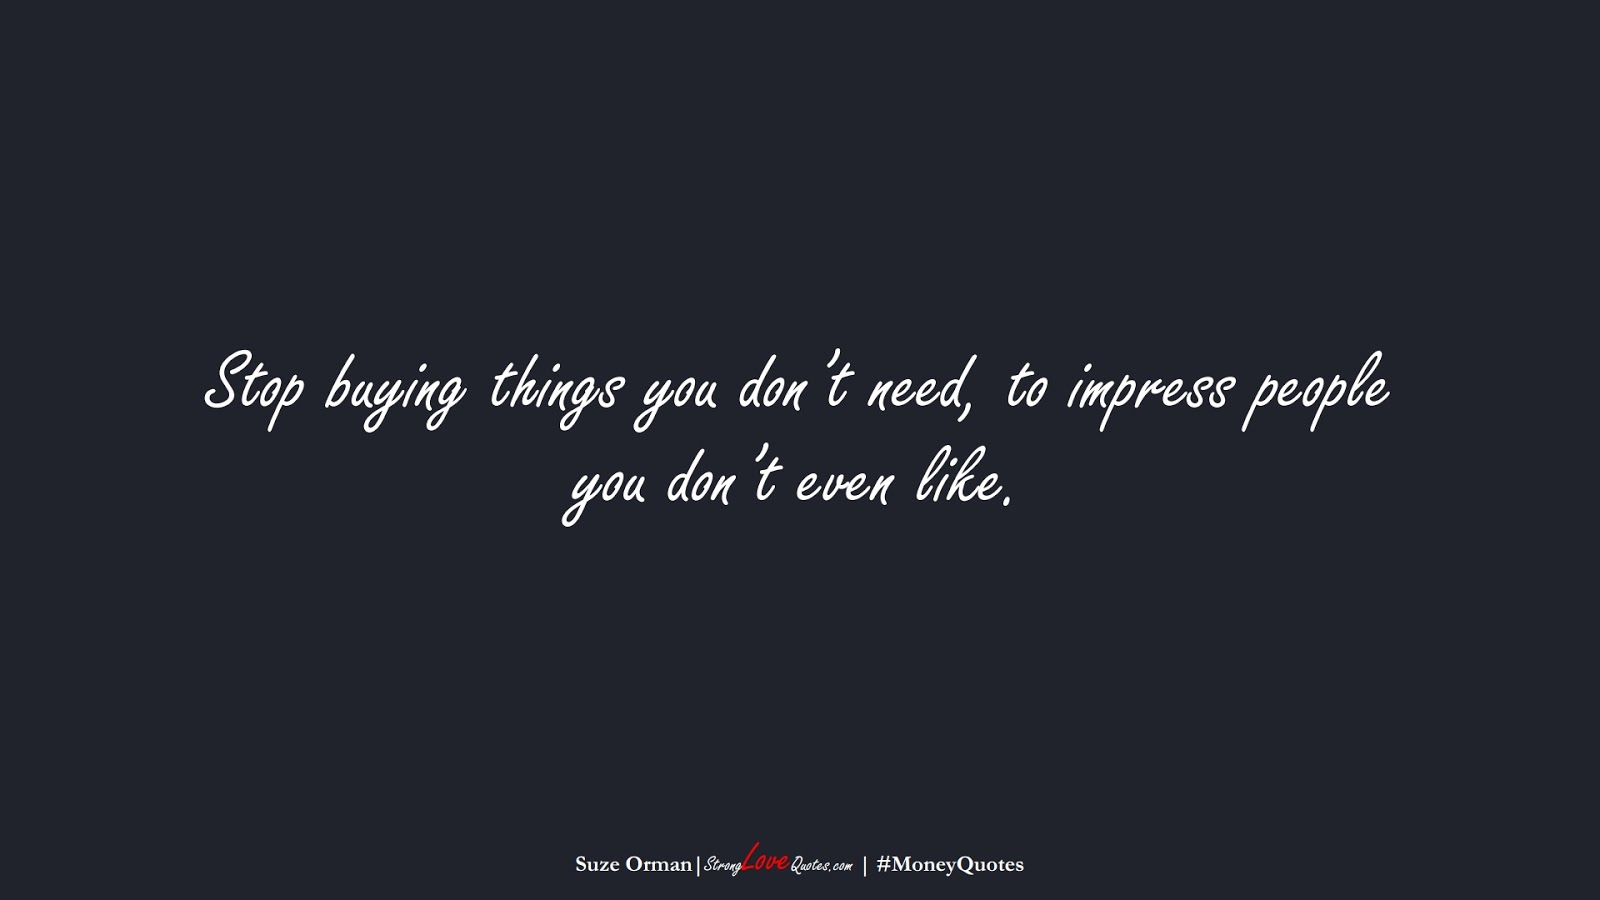 Stop buying things you don't need, to impress people you don't even like. (Suze Orman);  #MoneyQuotes